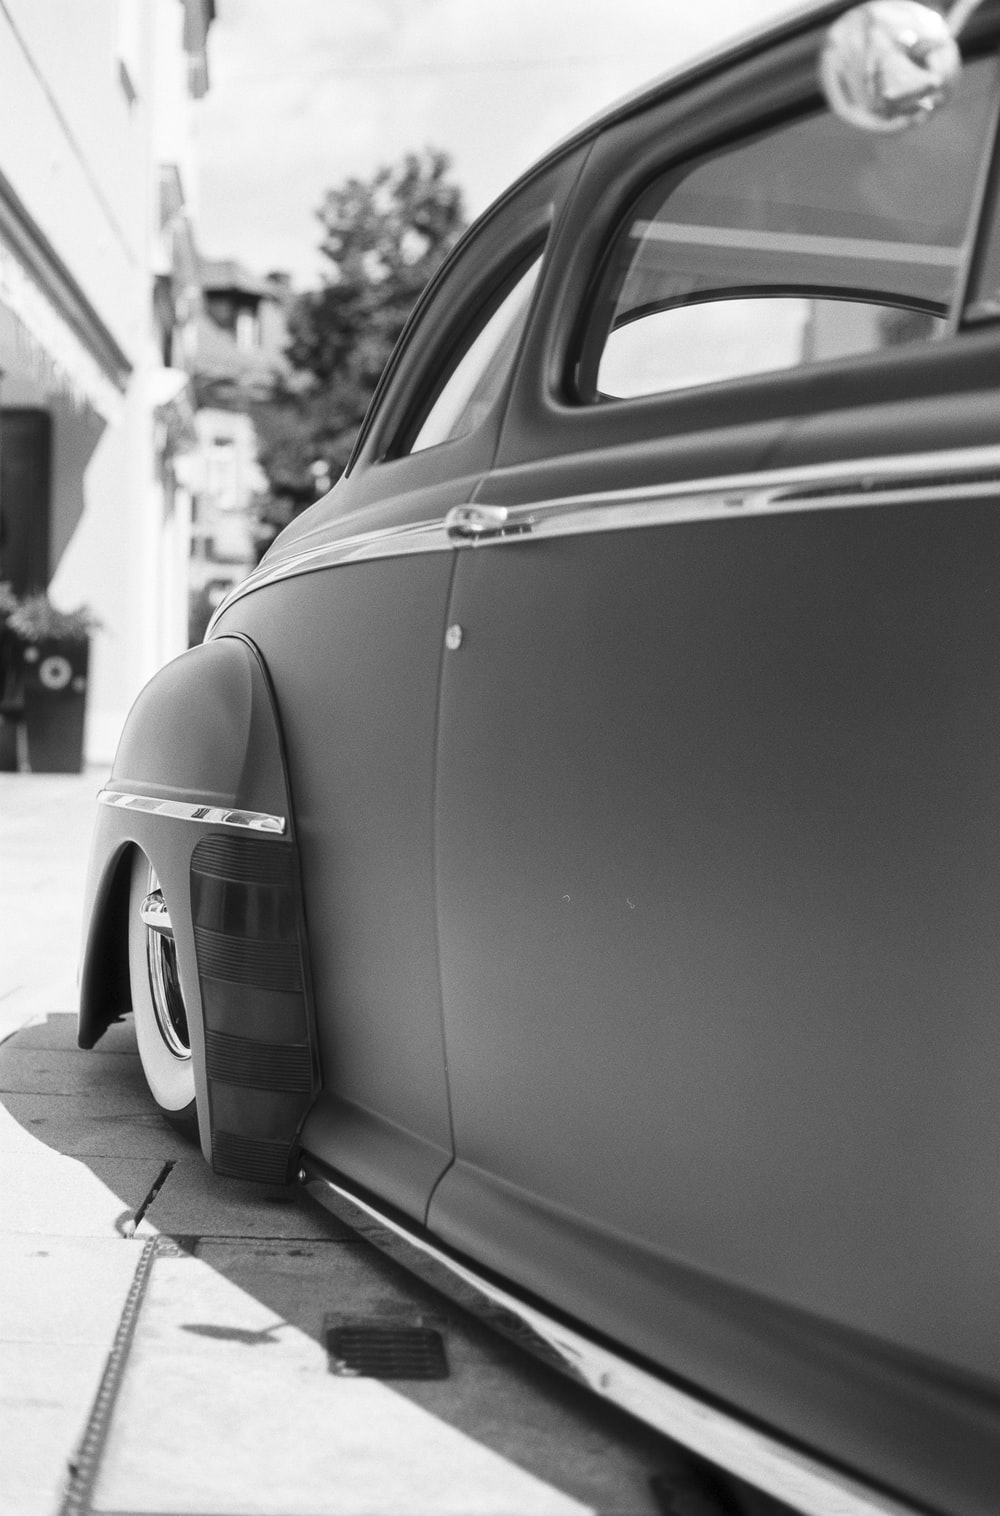 grayscale photo of car parked near building